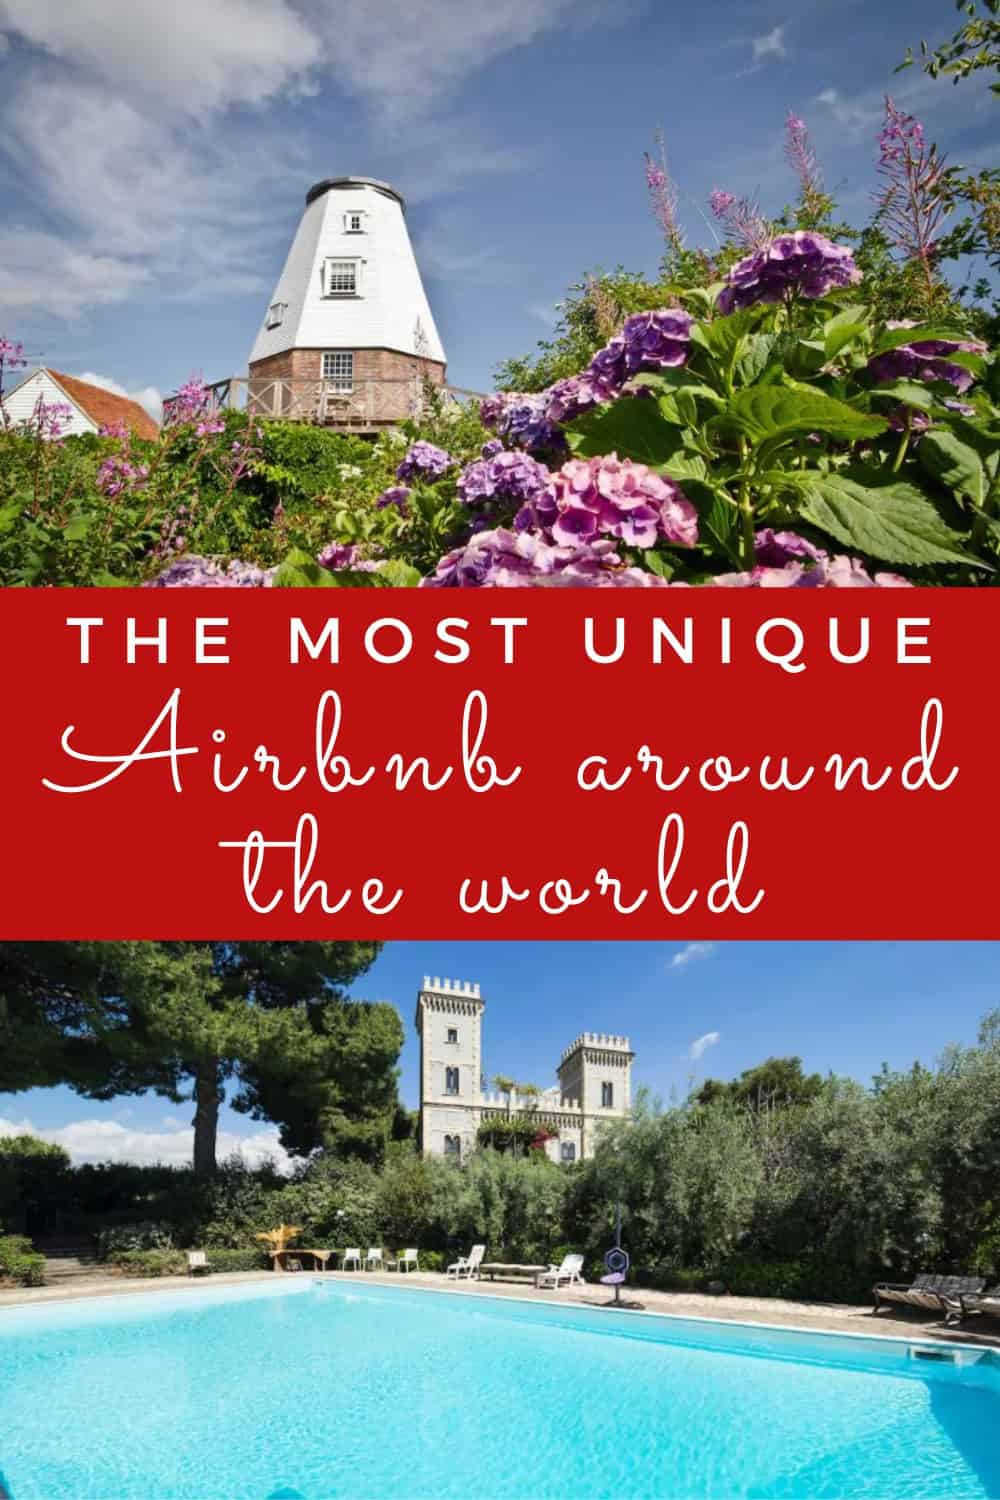 The most unique Airbnb around the world